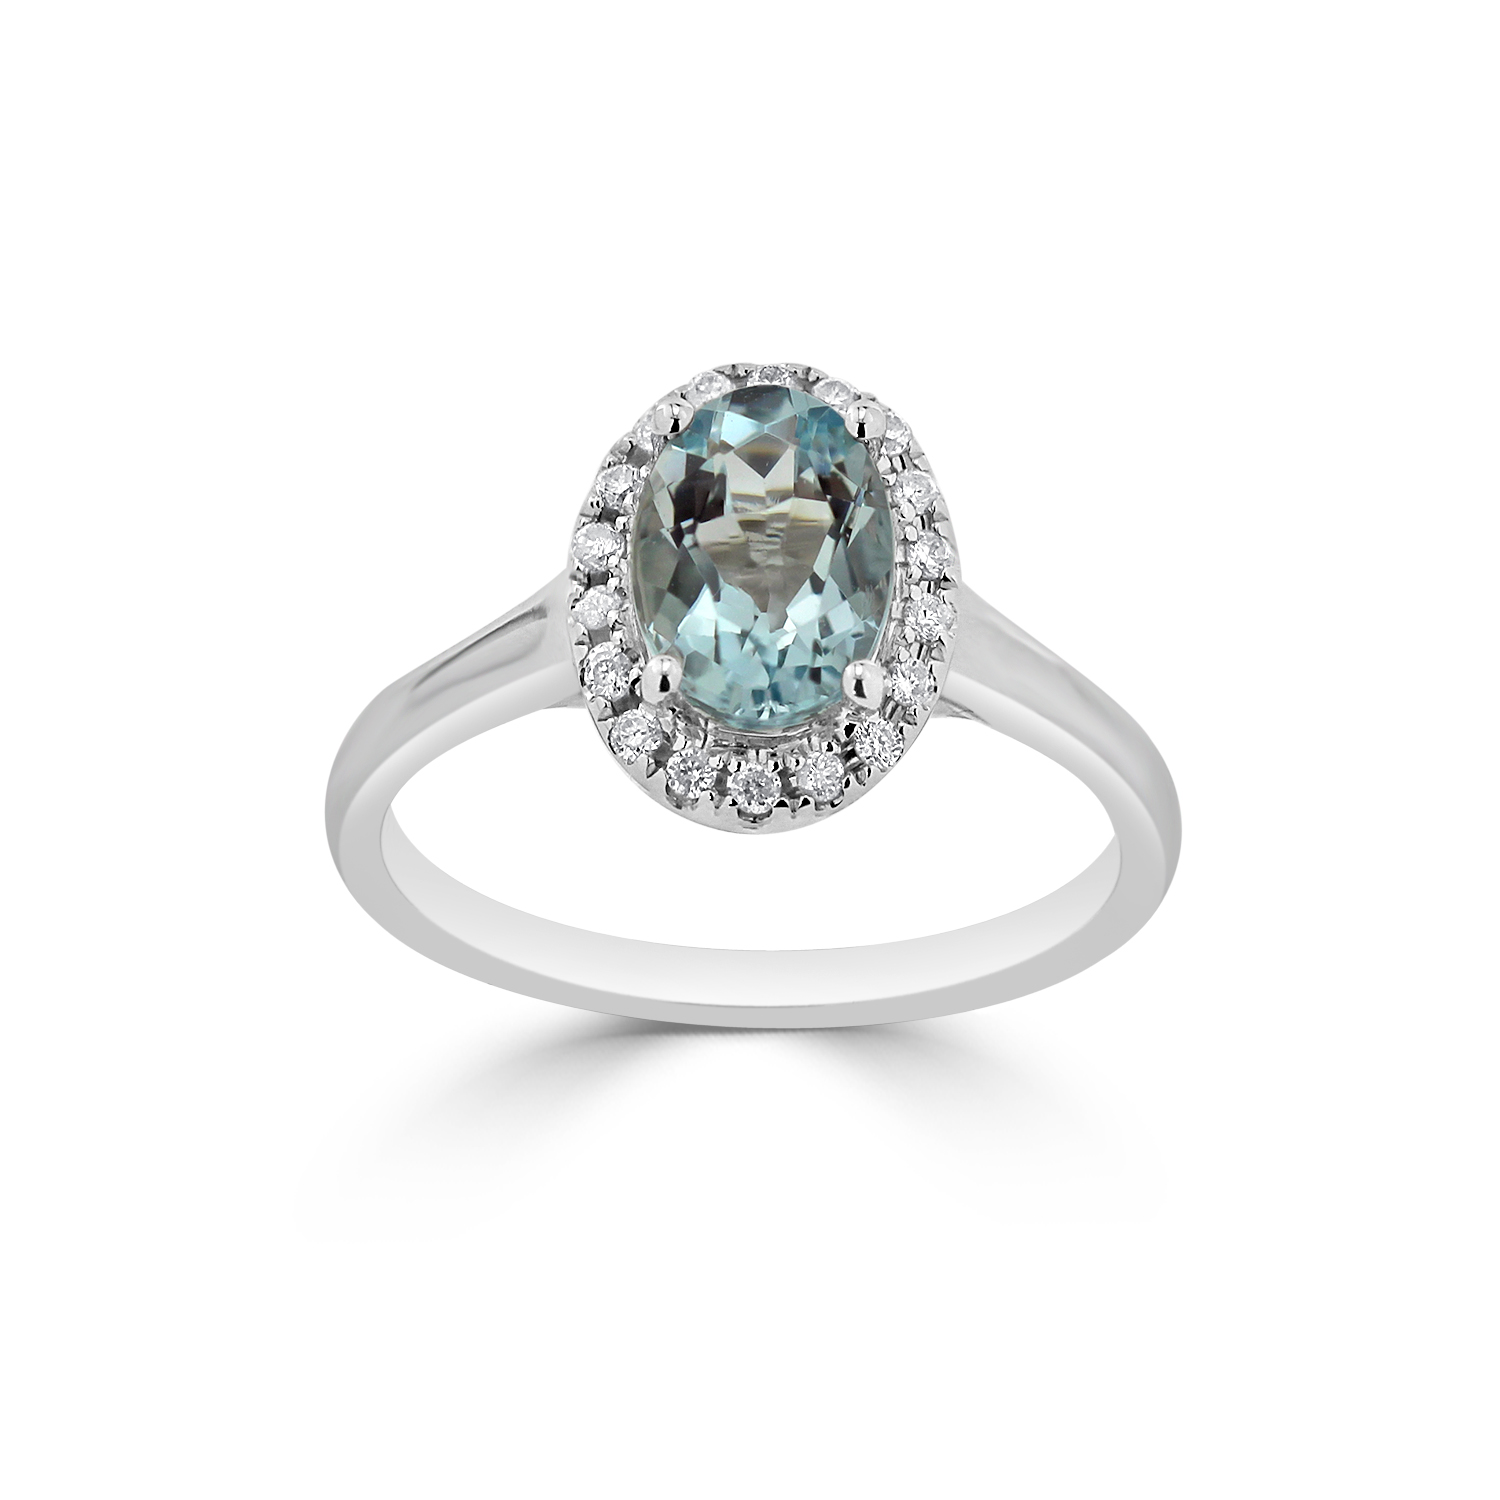 Halo Aquamarine Diamond Ring in 14K White Gold with 0.75 carat Oval Aquamarine